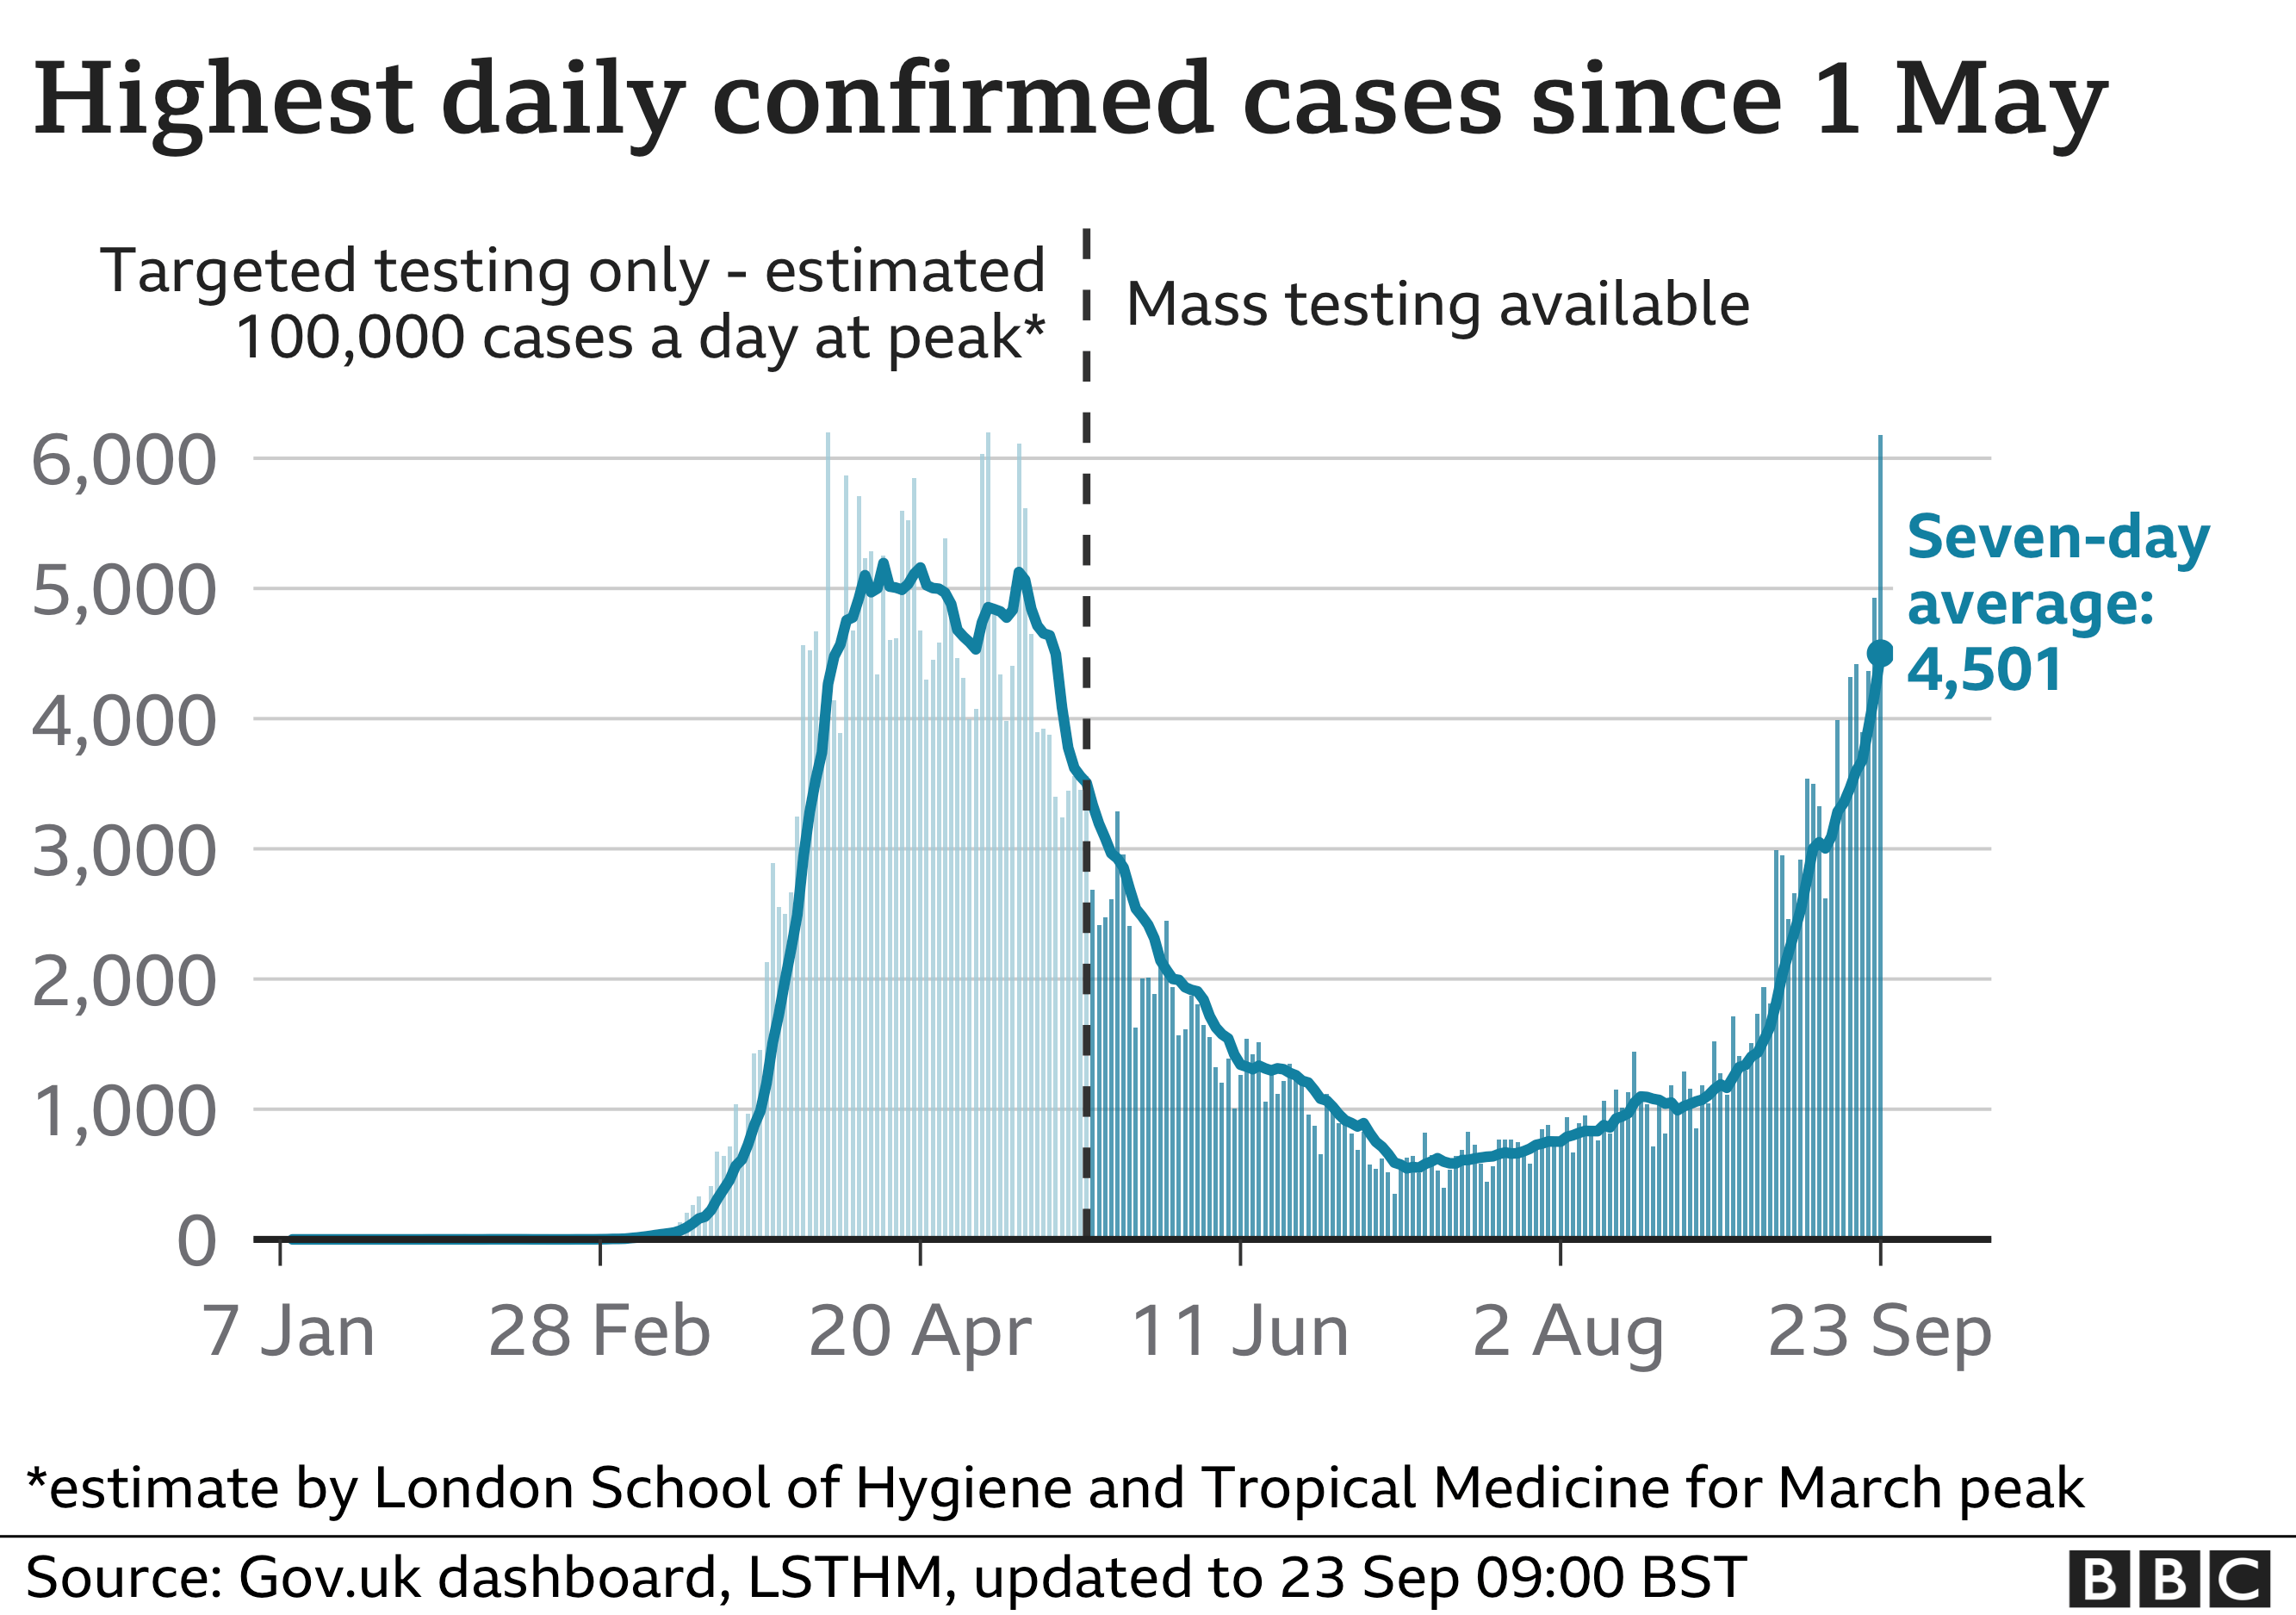 Highest daily confirmed cases since 1 May